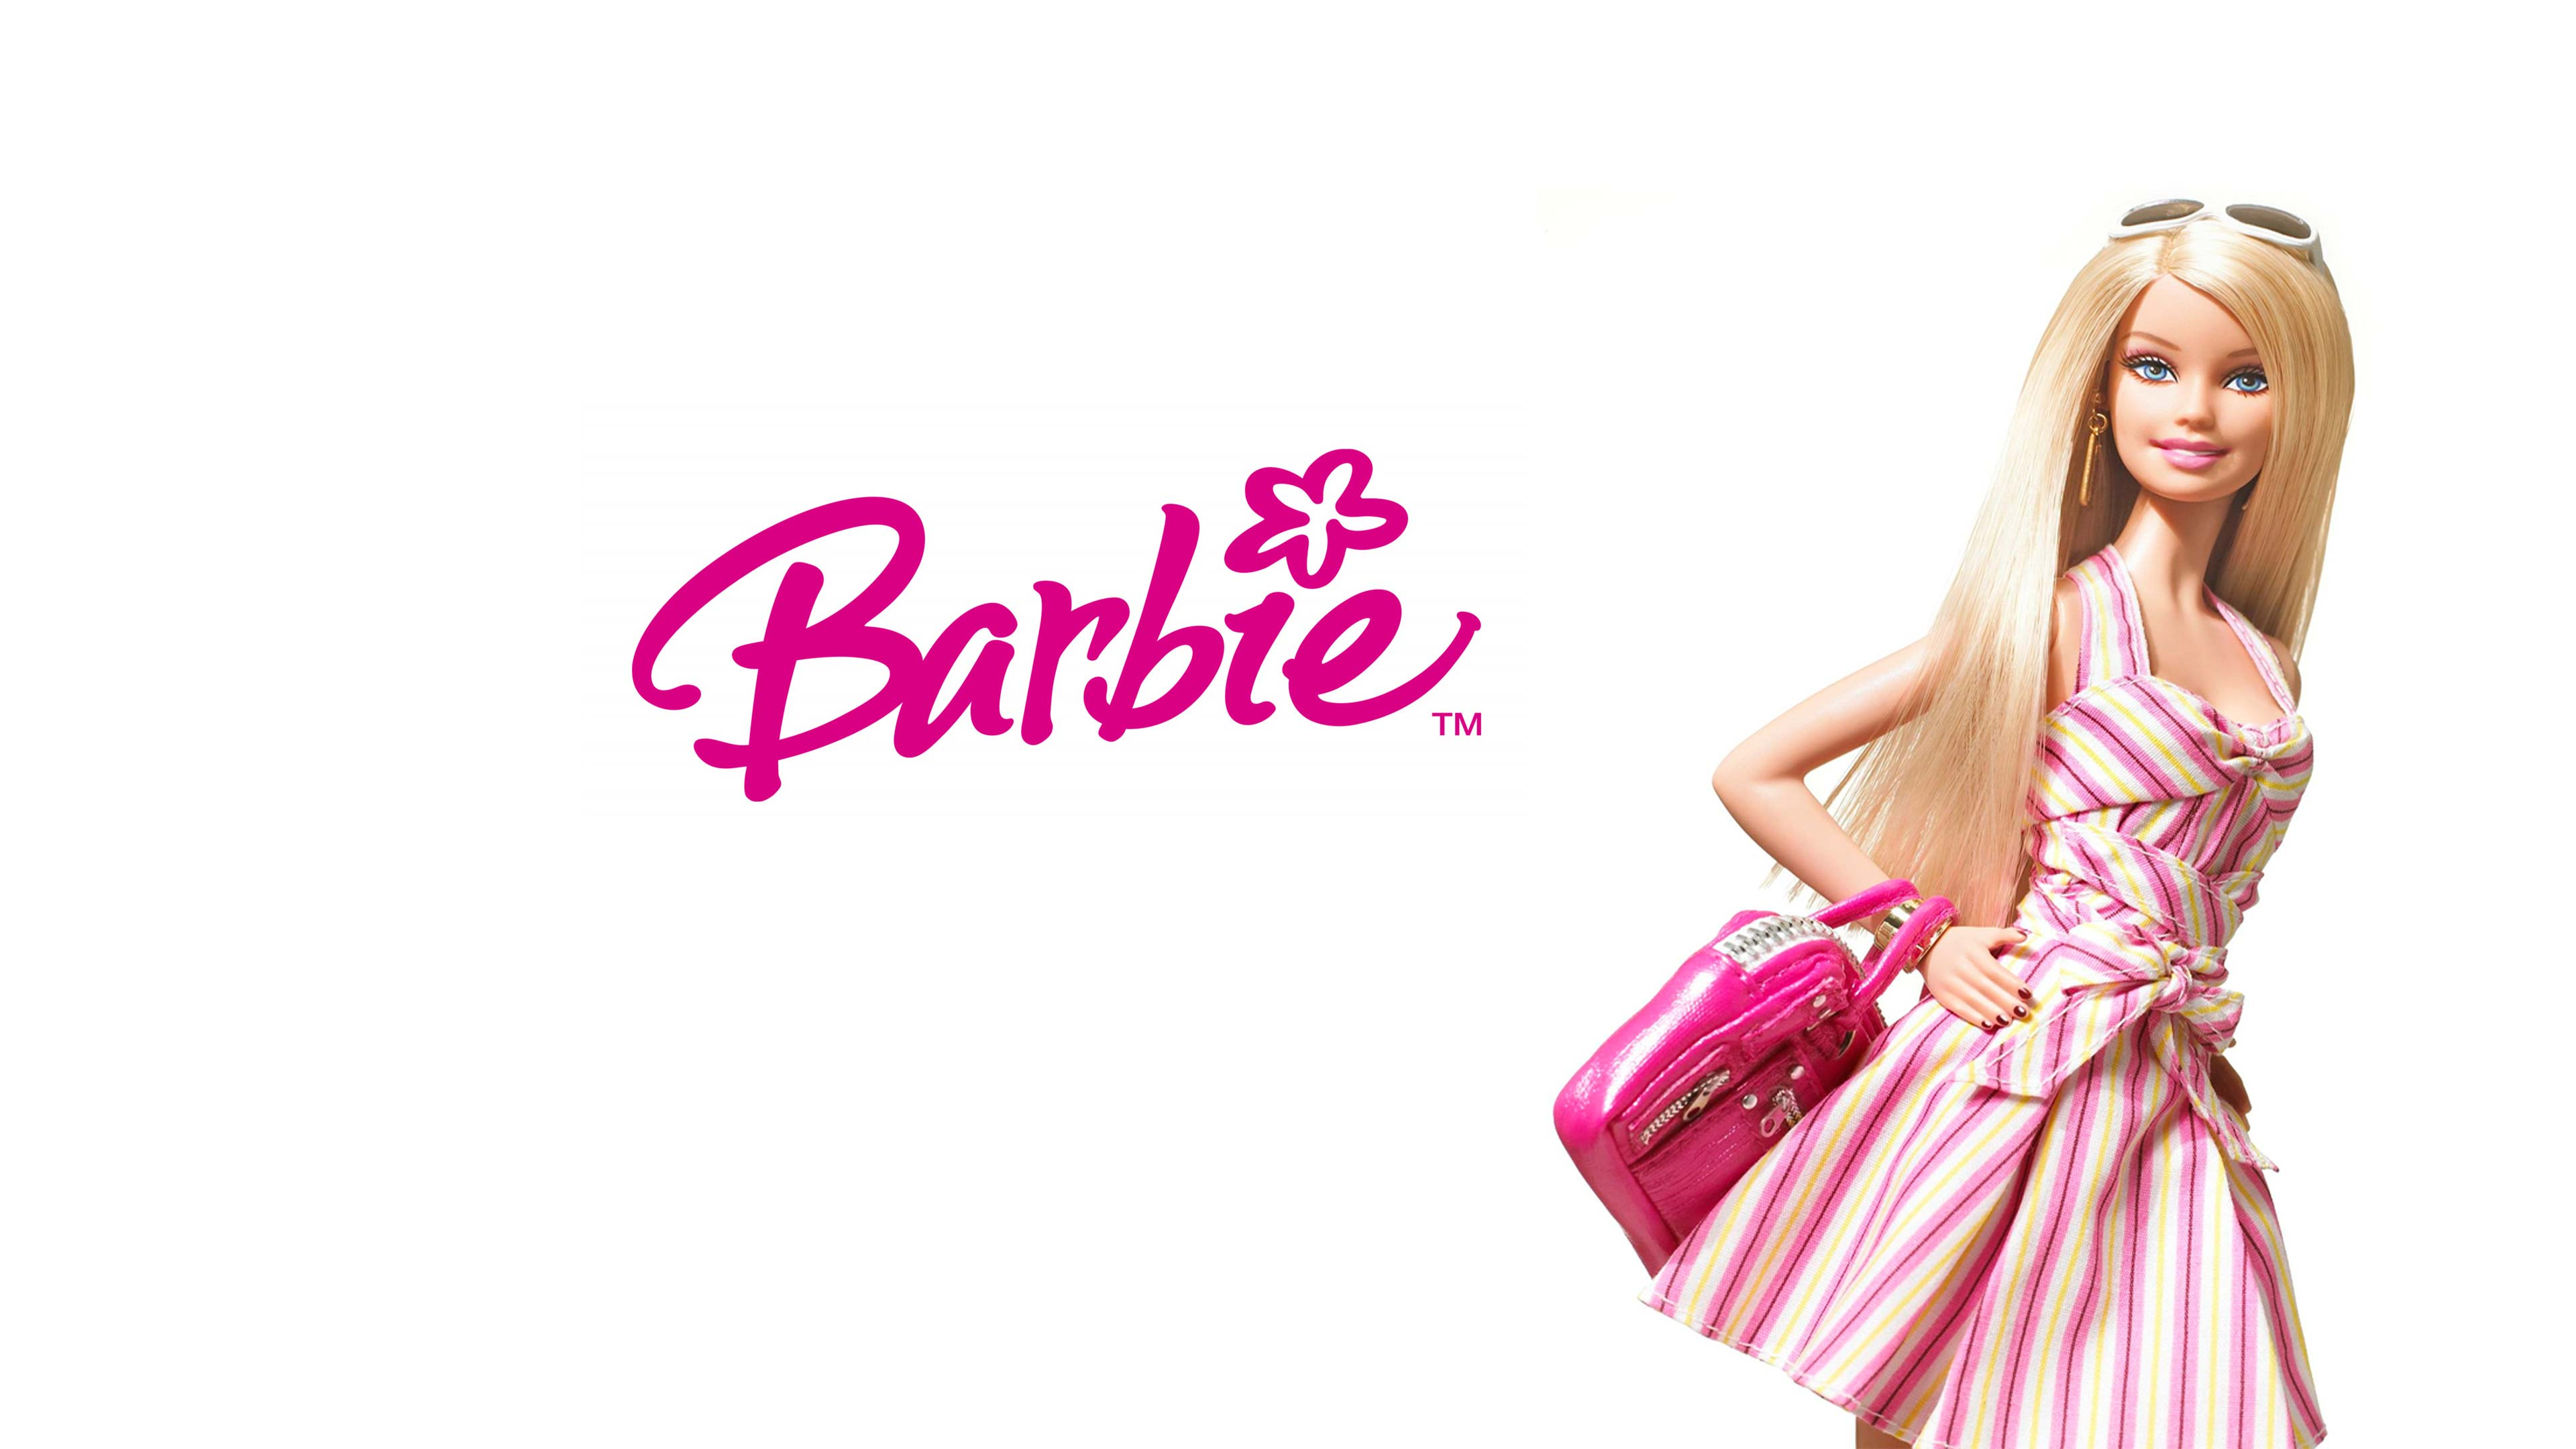 barbie girl pink dressed white background